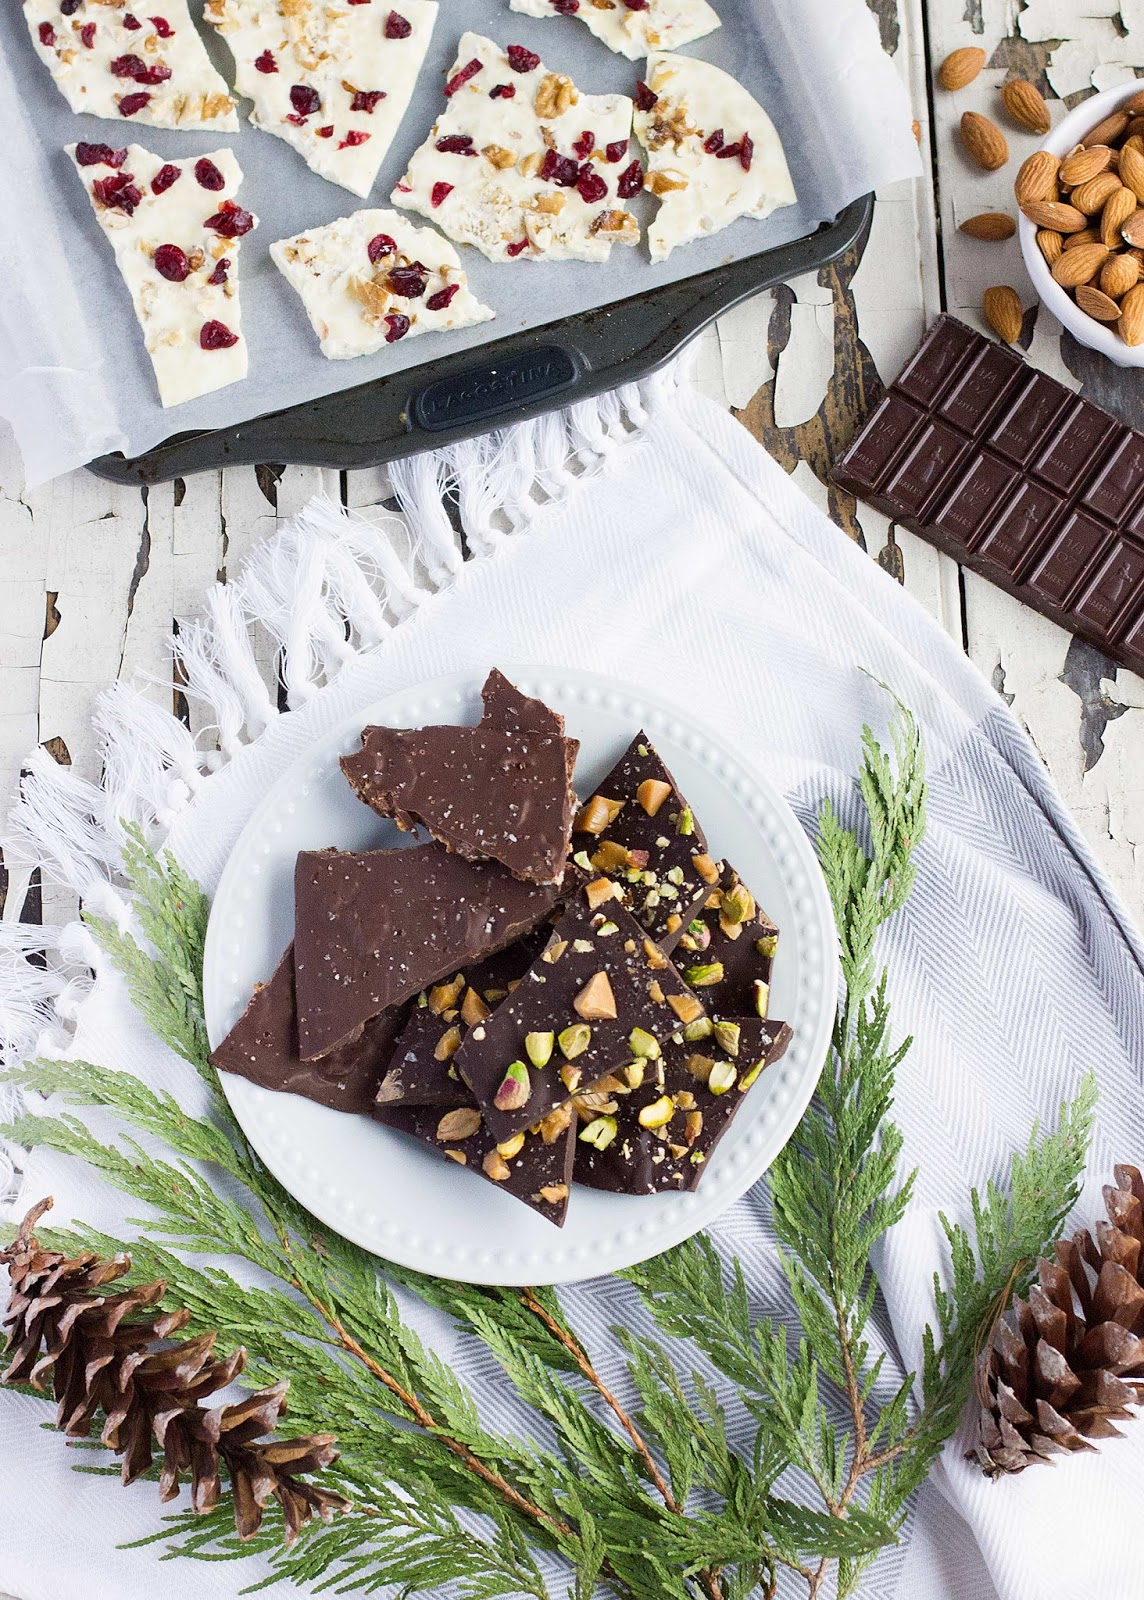 Salted Maple Bacon Chocolate Bark by Brittany Stager